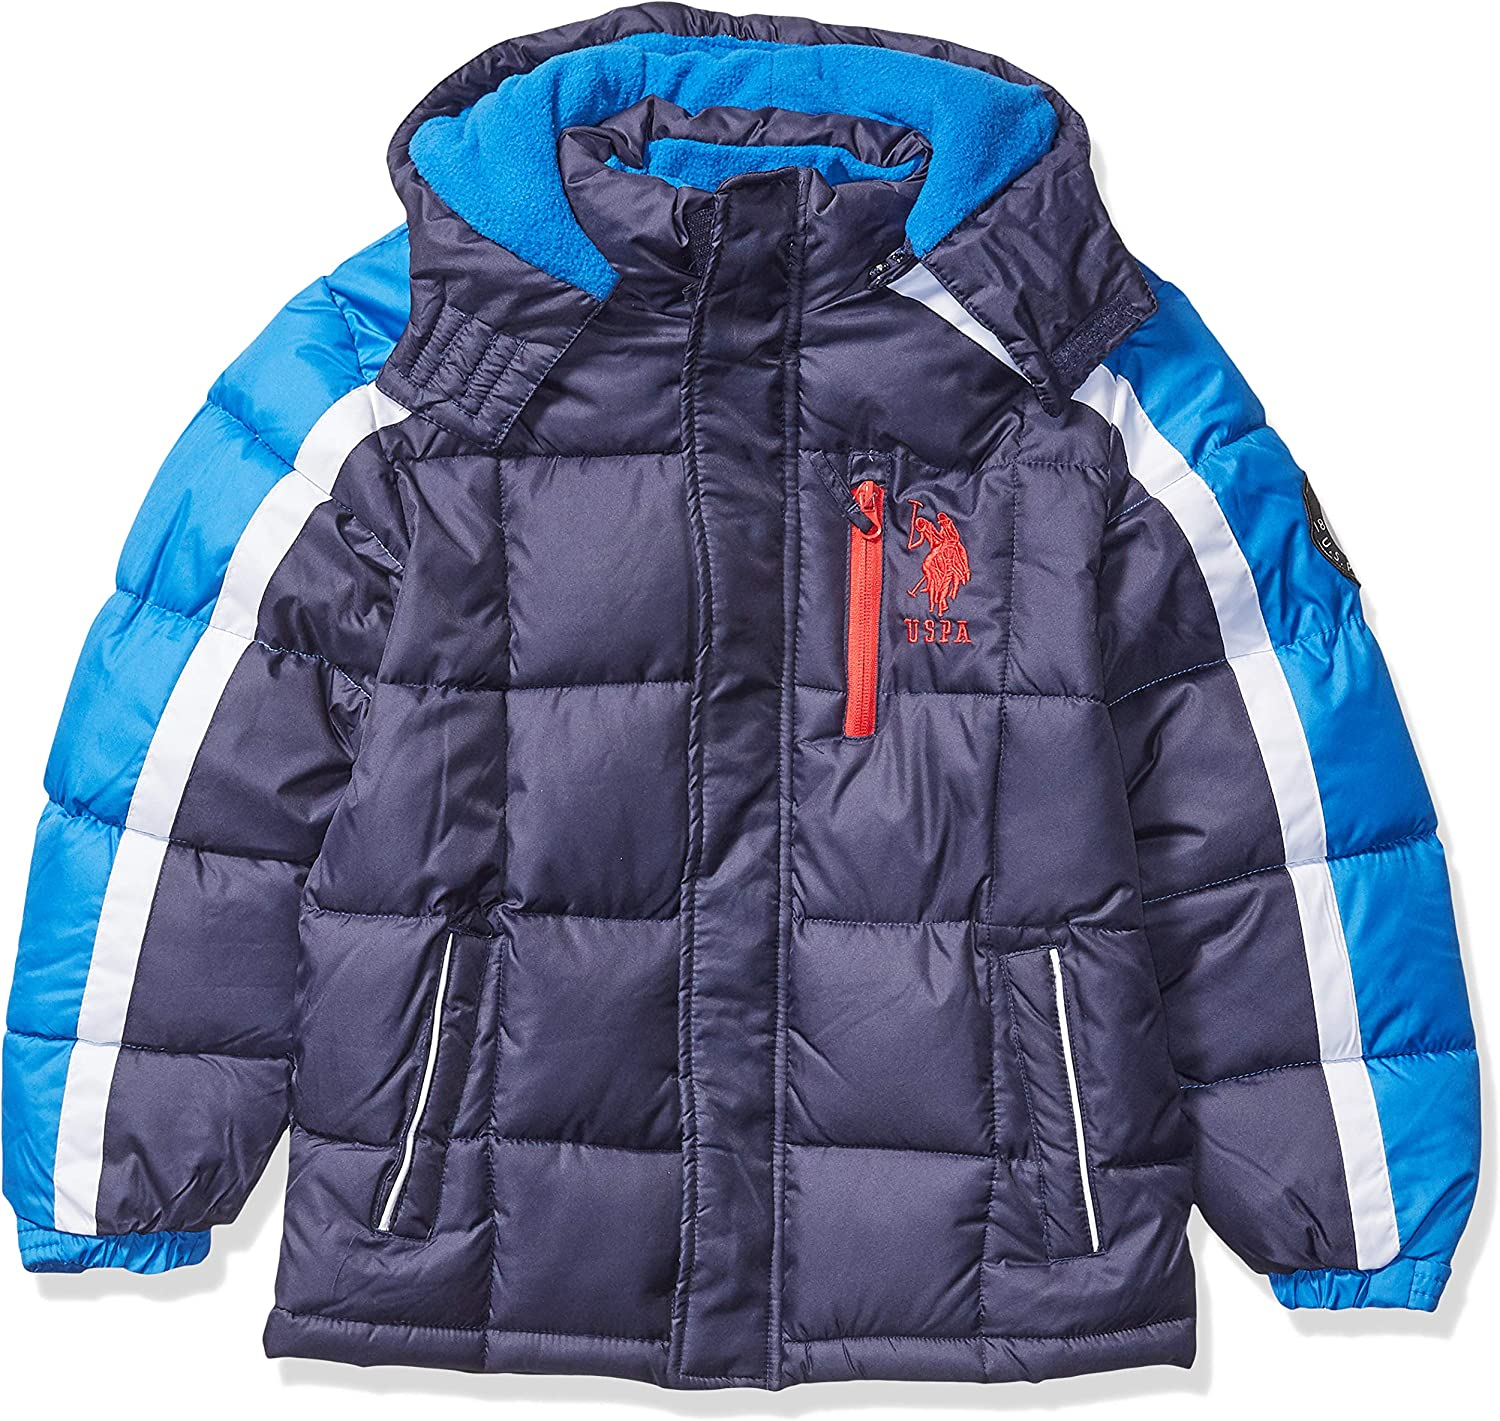 U.S. Polo Assn. Boys' Bubble New sales Super sale Styles Available More Jacket